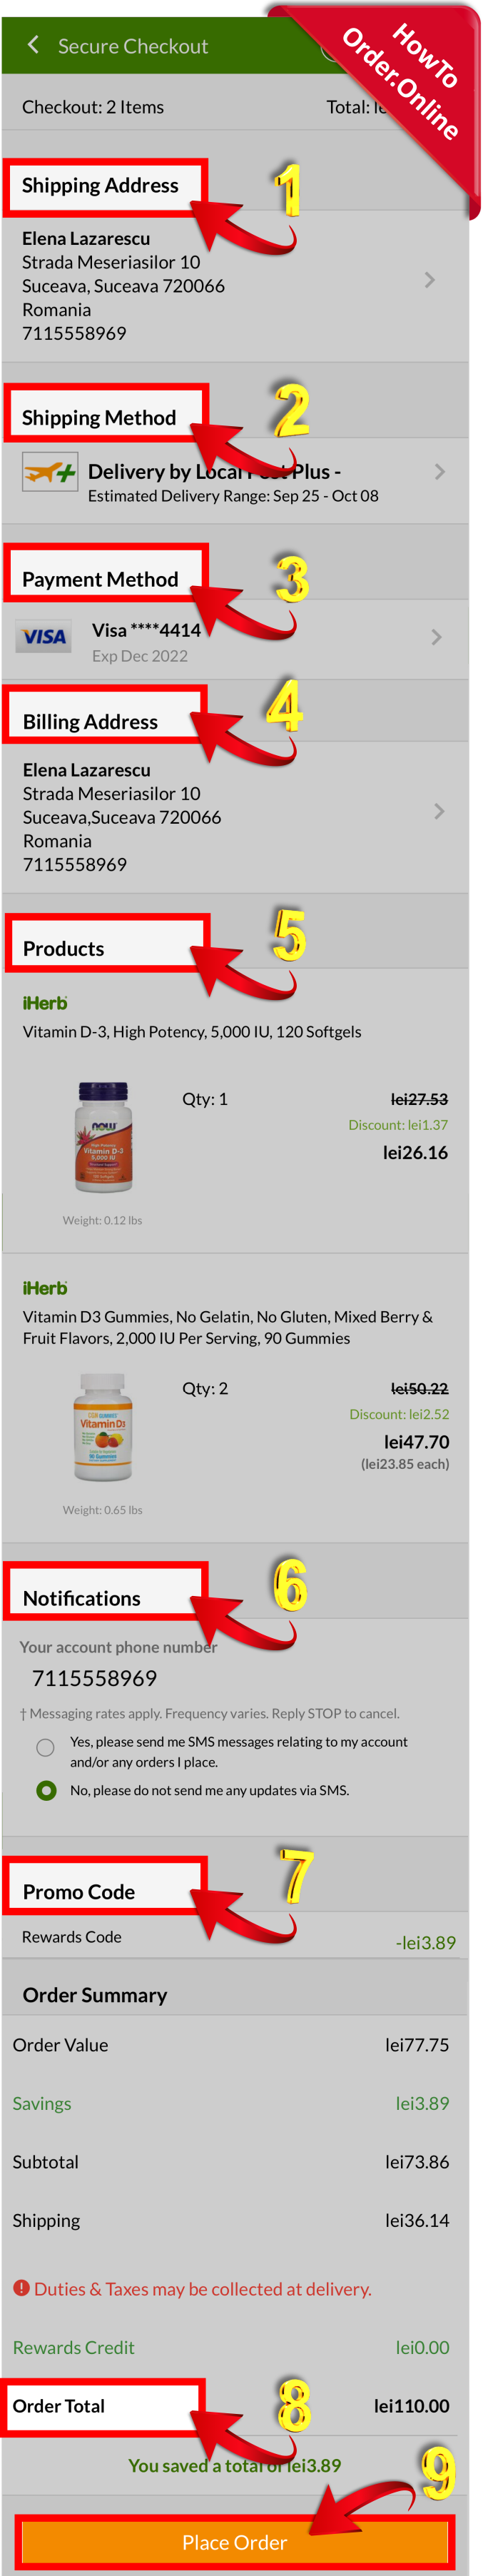 28-Reviewing iherb order then finally placing it_Mobile Screenshot_US